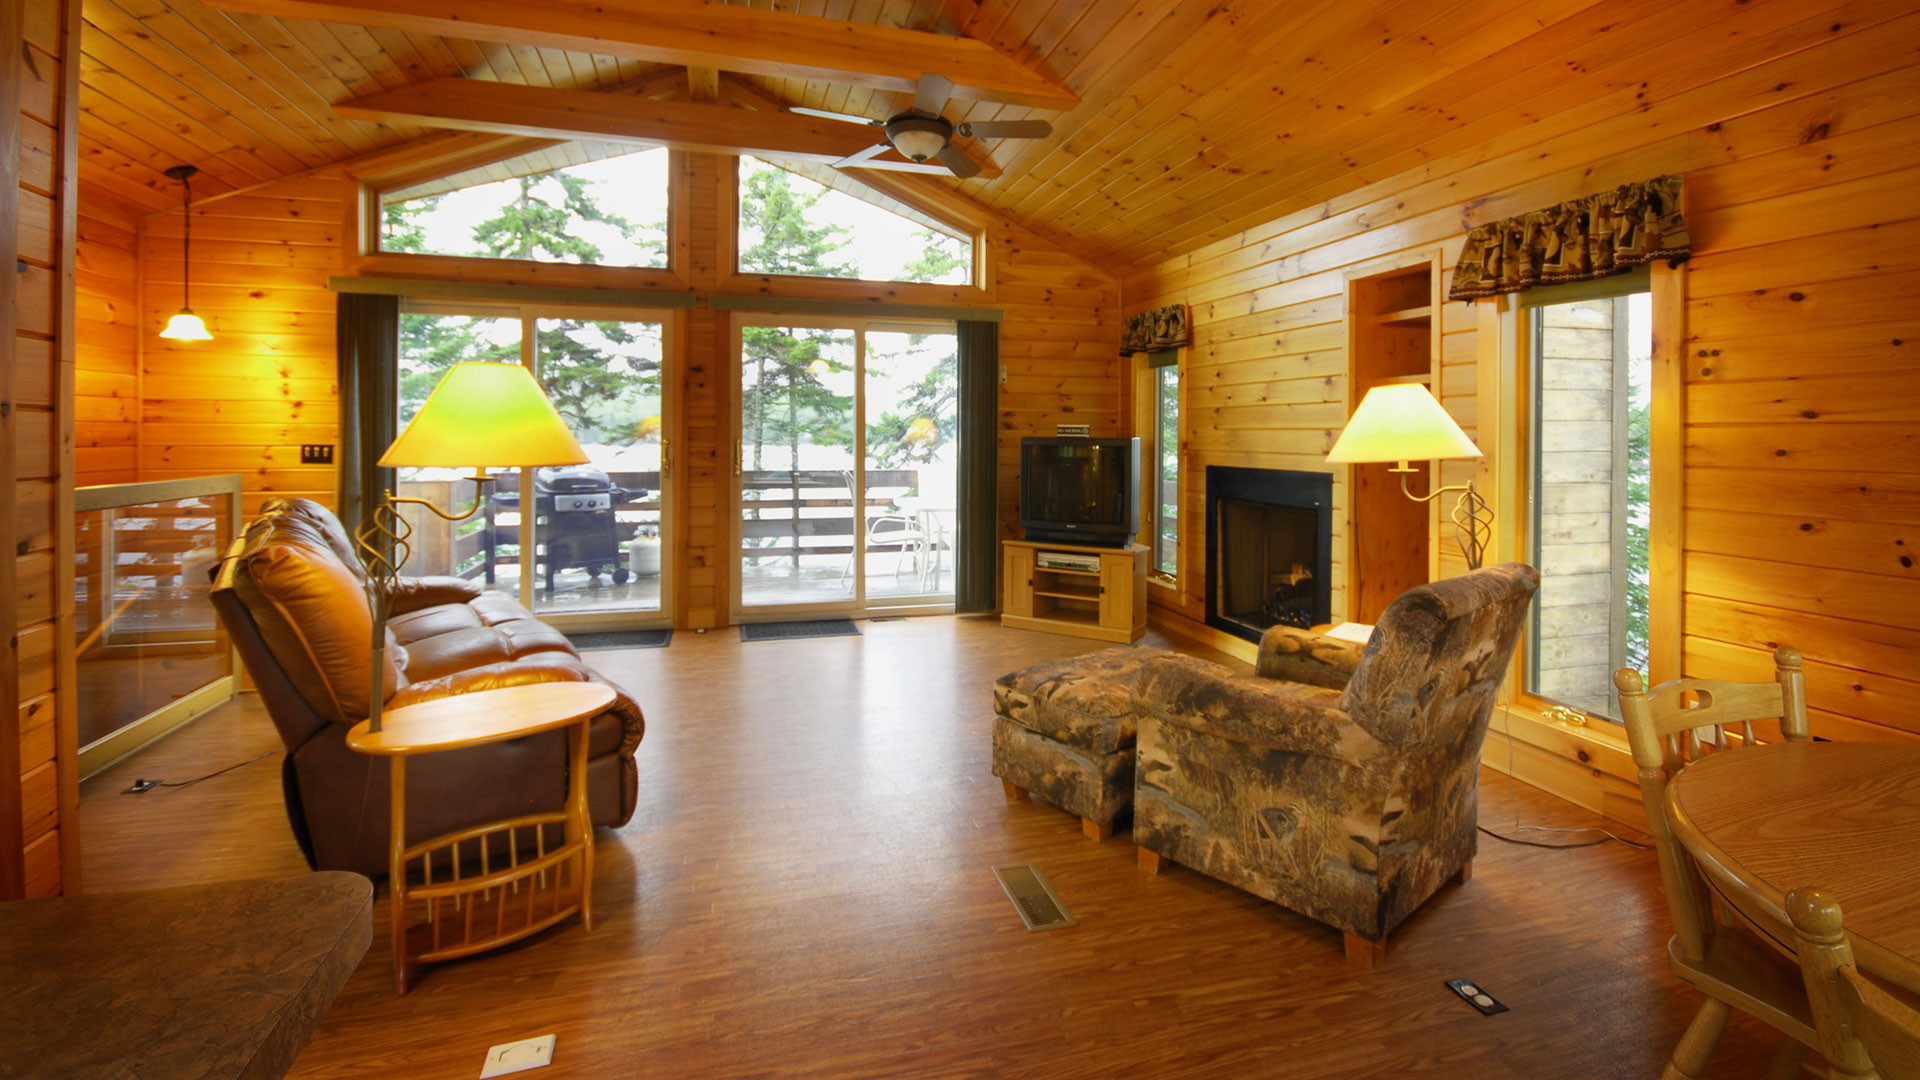 estate rust mountain real l unique rentals nh homes cabins white pond for cabin in sale waterfront awesome home of lakefront